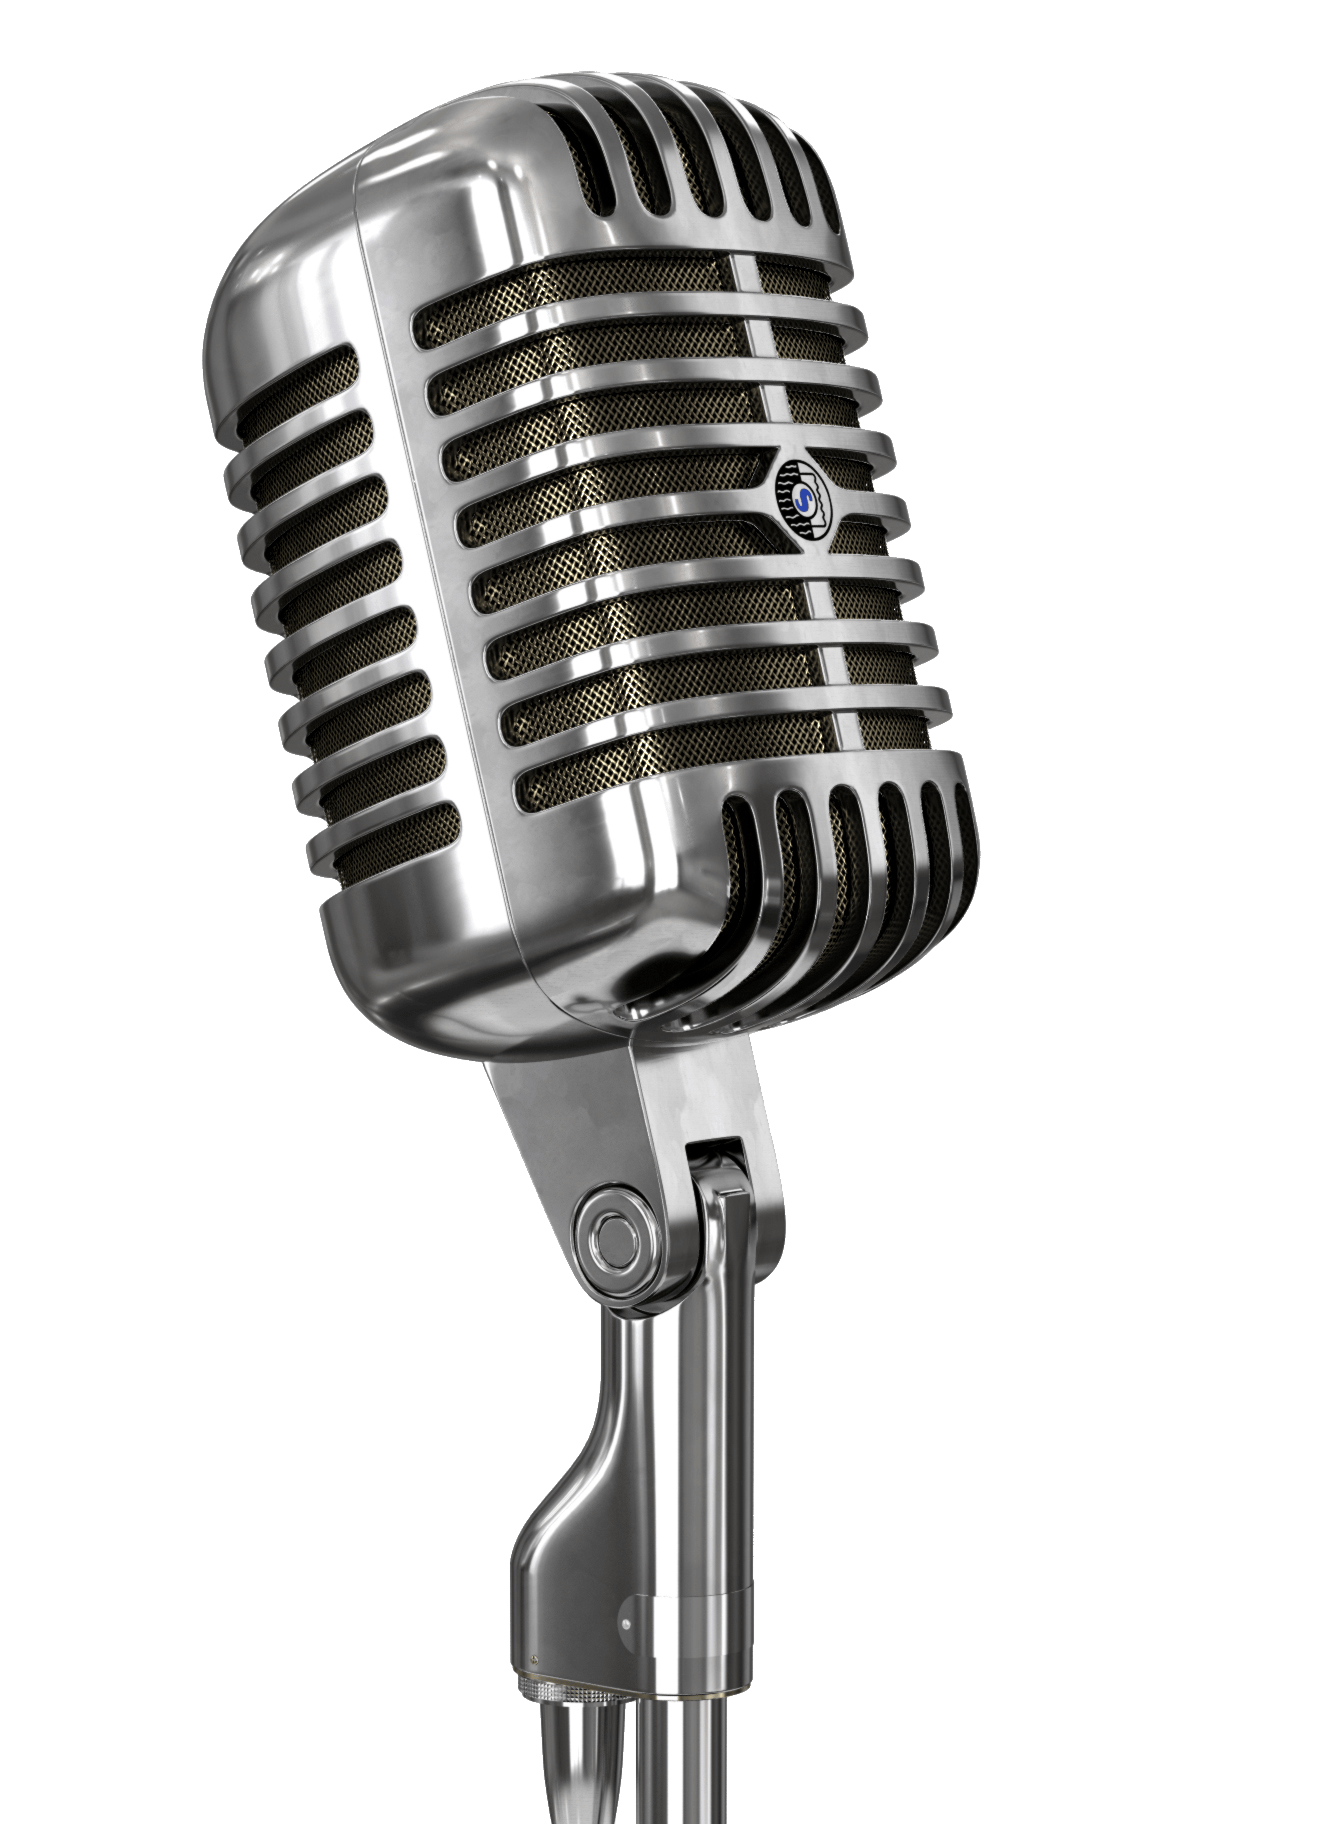 microphone transparent Vintage microphone and stand transparent stick png